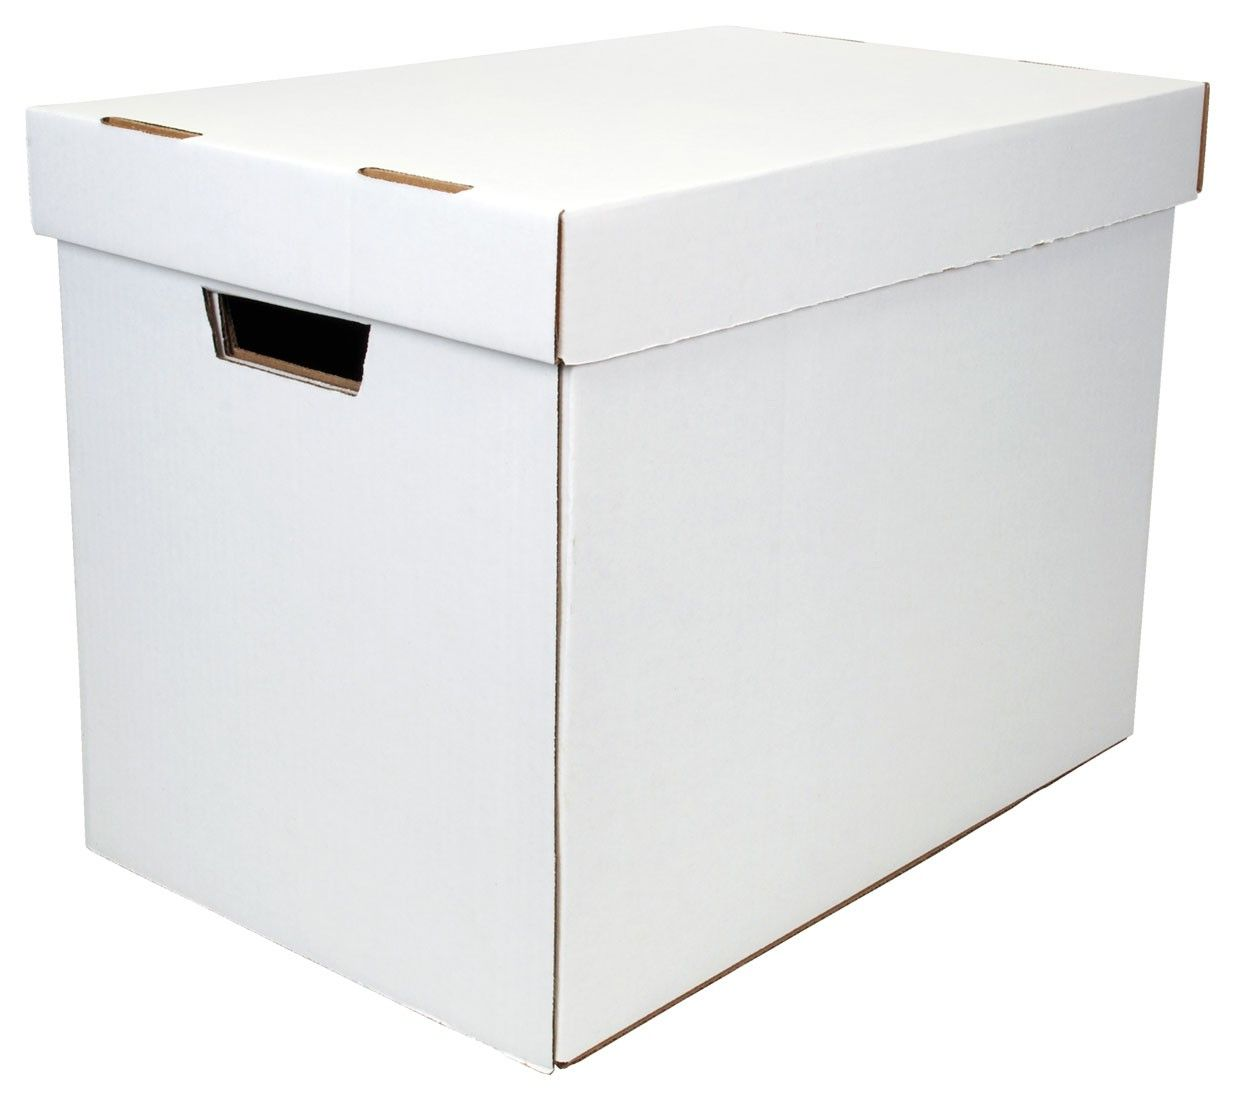 11x17 Storage Box Storage Storage Box File Storage